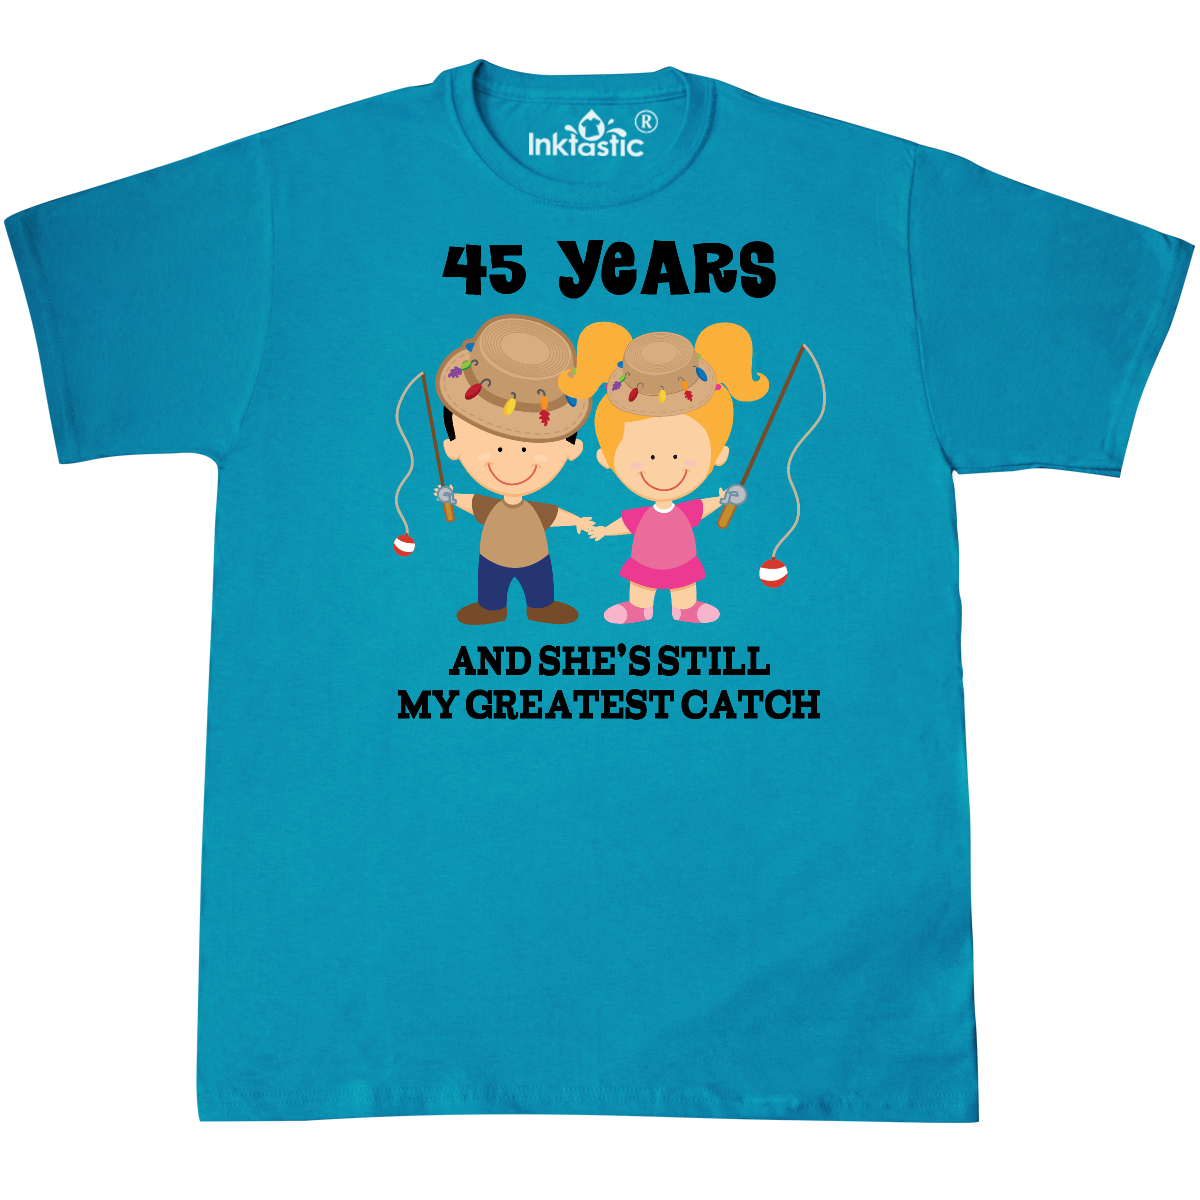 Pin on Anniversary Tshirts and Party Gifts